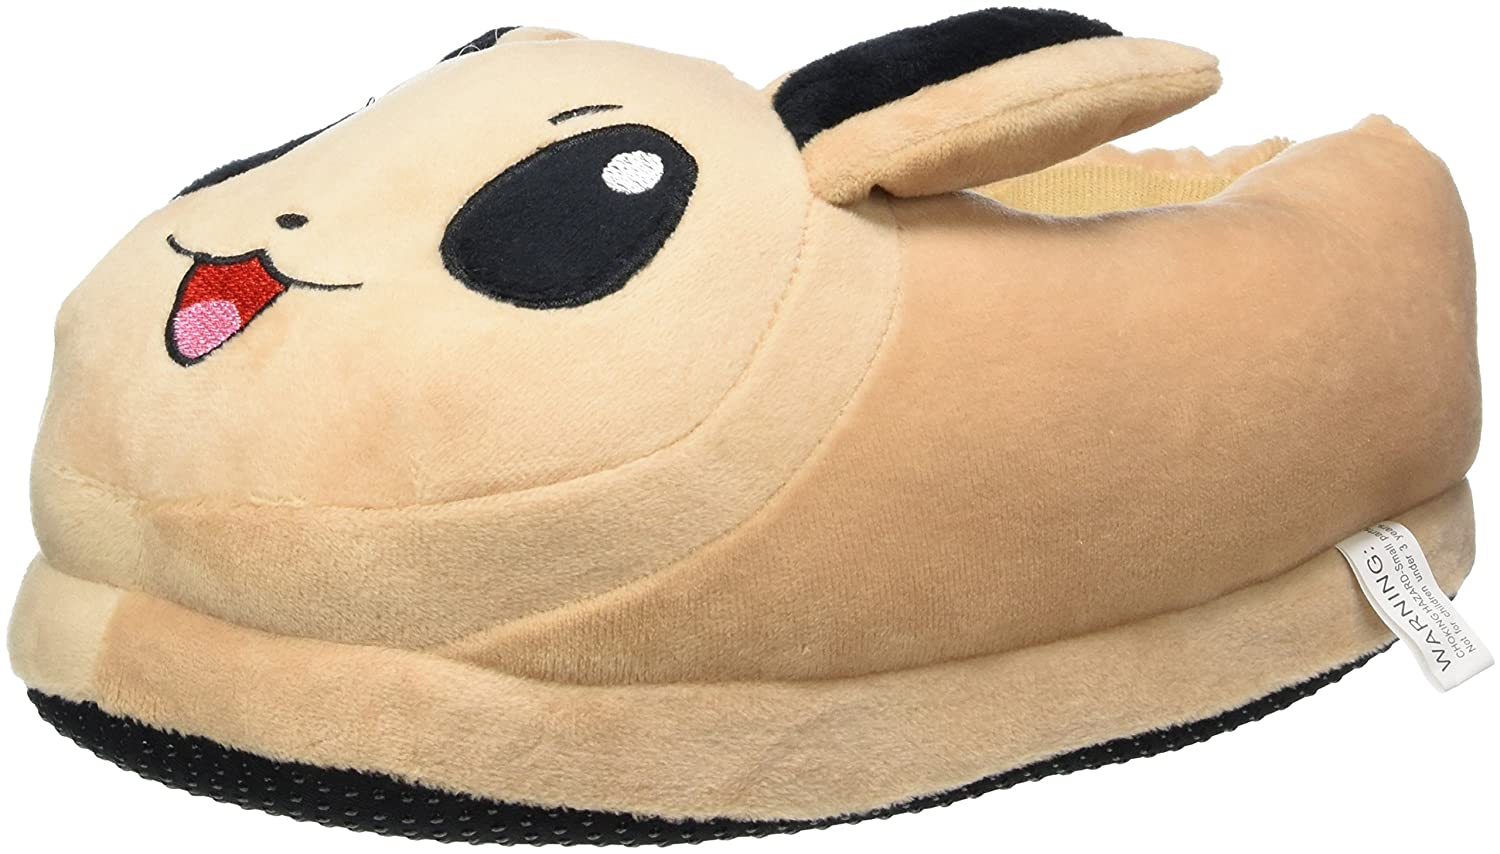 Carchet - Pokemon plush slippers - Eevee (brown) - Unisex one size slippers  for adults (they fit UK sizes- 3.5-10)  Amazon.co.uk  Toys   Games 01891a1585